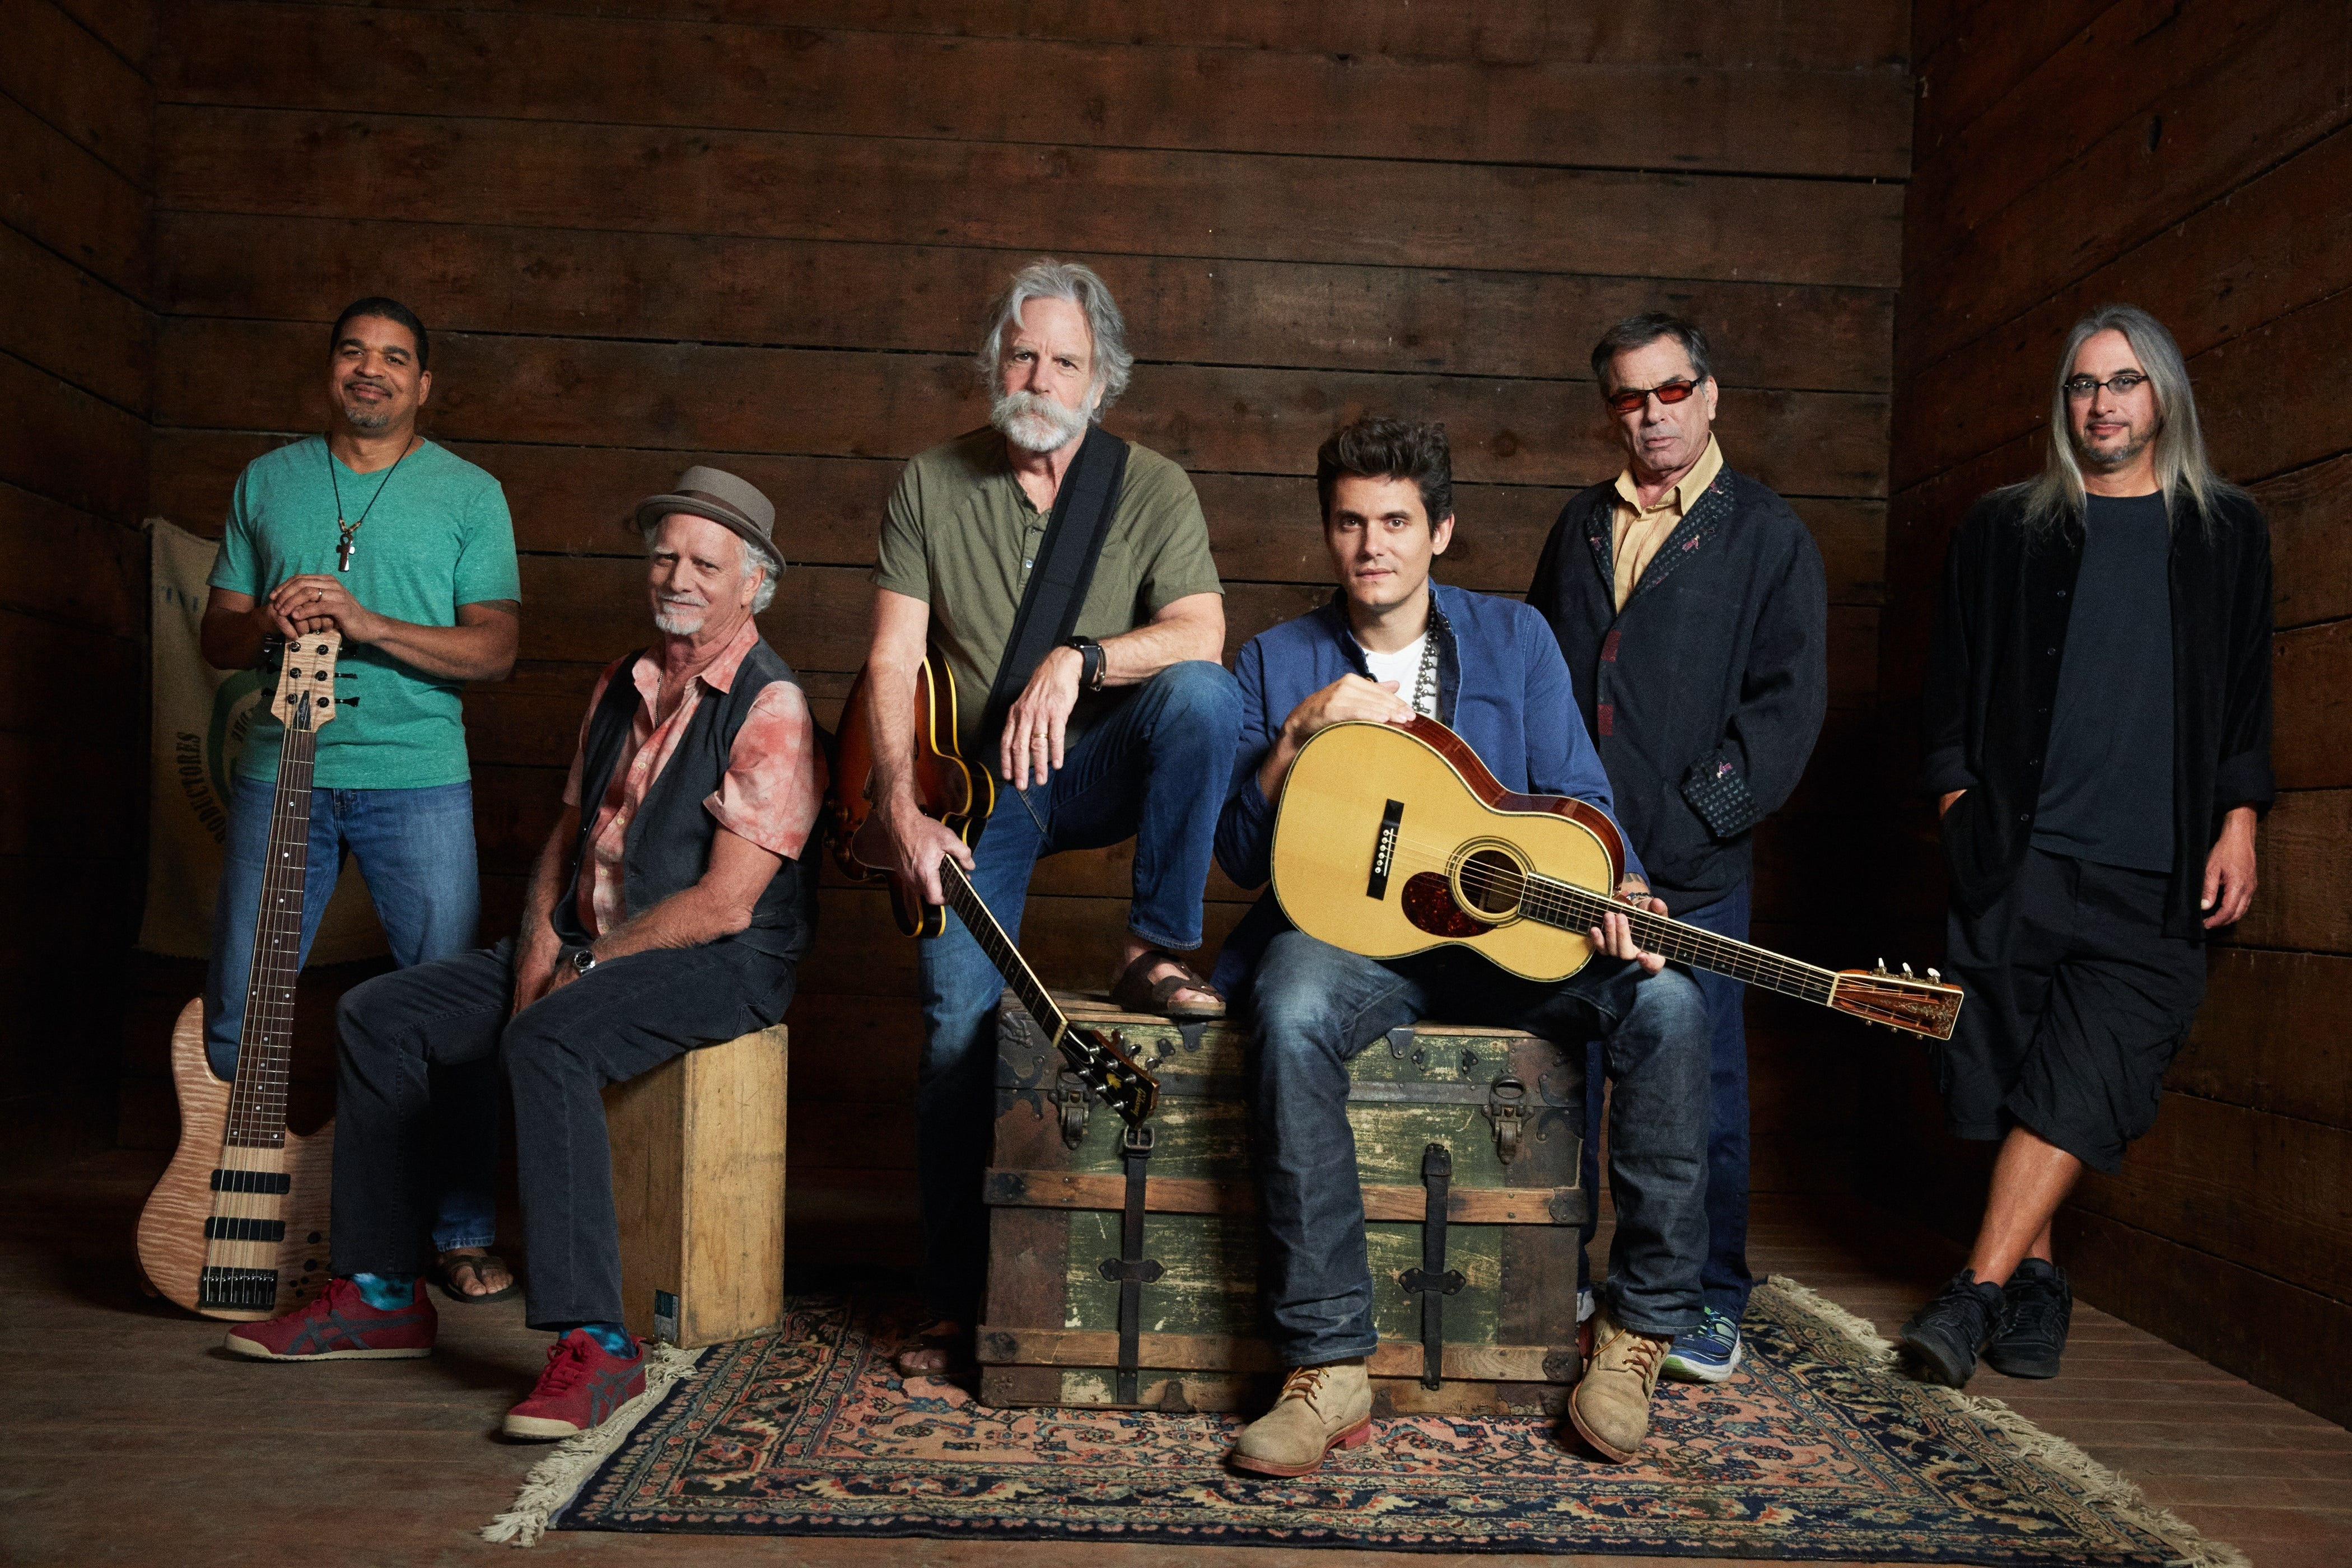 Dead and Company repeat Grateful Dead Woodstock set at Bethel Woods tour stop